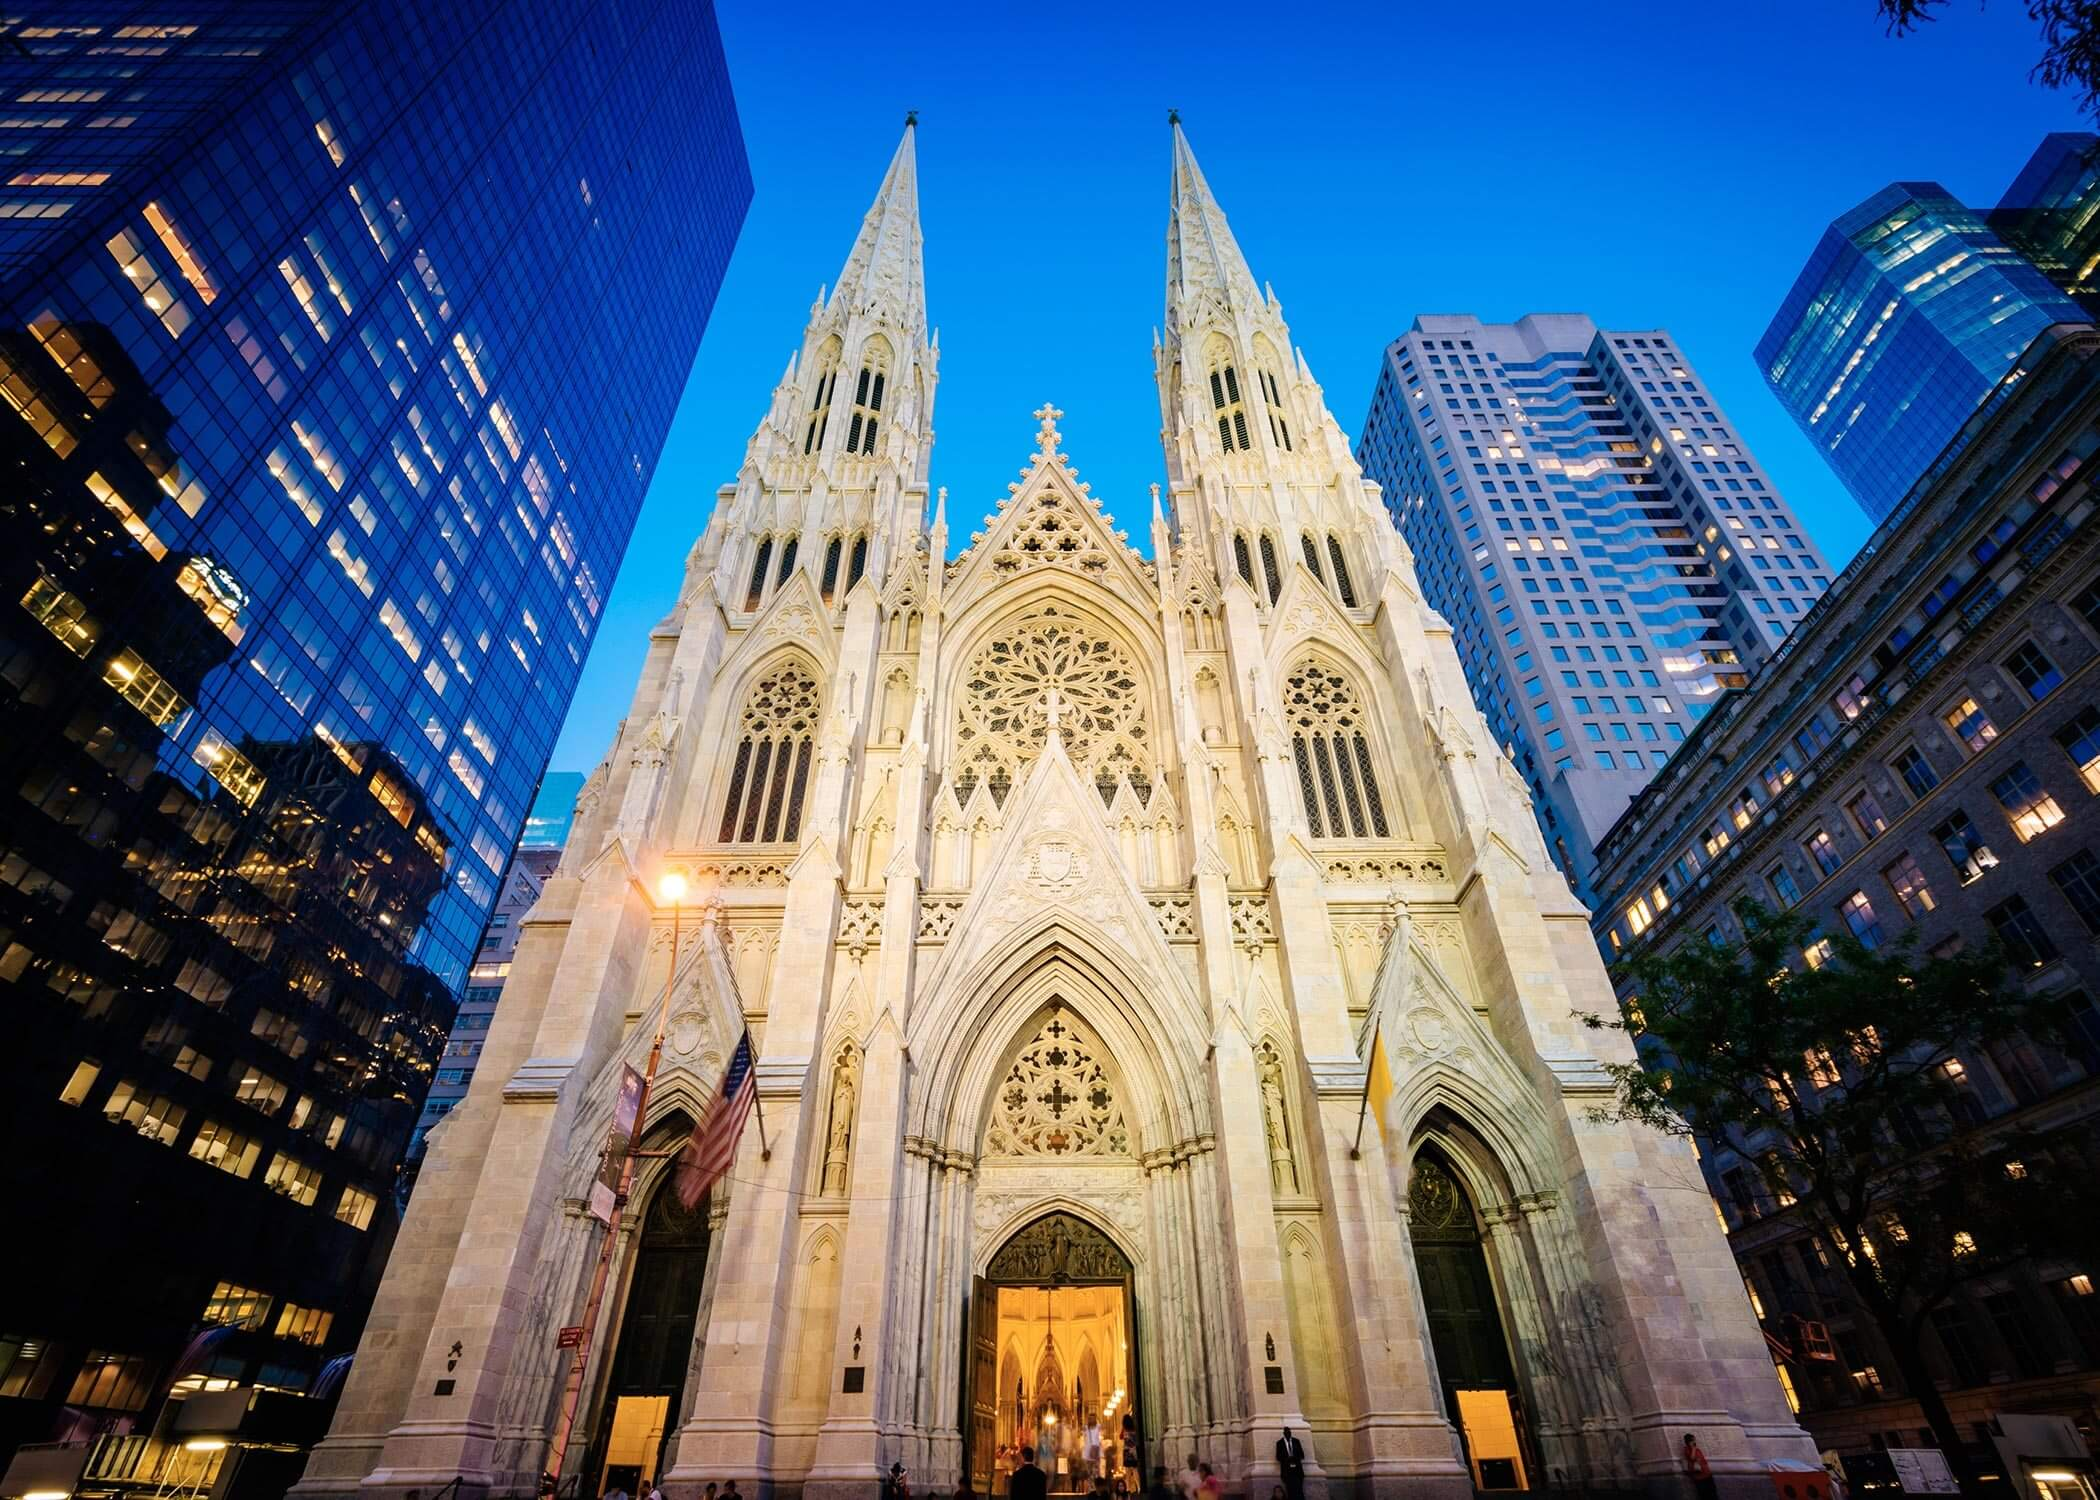 The exterior of a large white gothic cathedral against a blue evening sky surrounded by modern city buildings